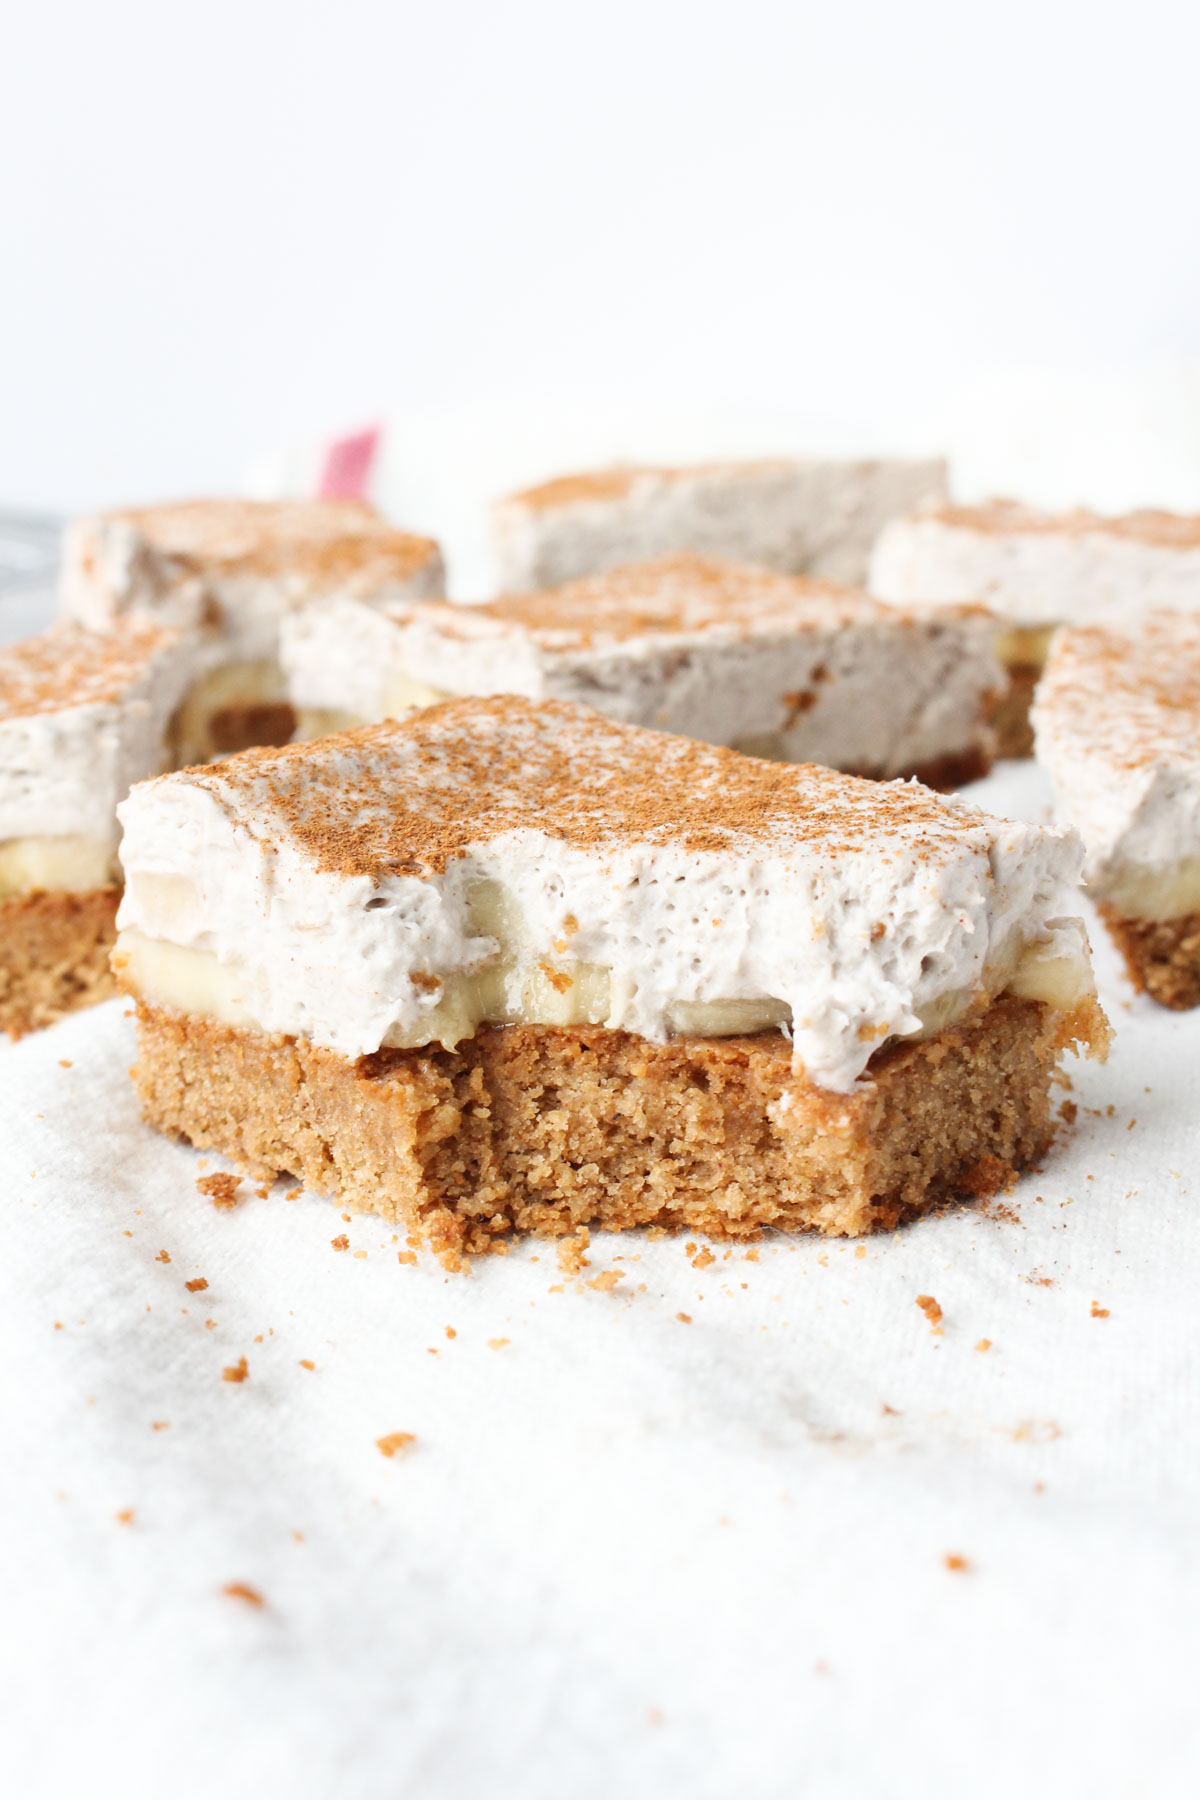 Banana Cream Pie Bar with a large bite taken out and crumbs around the edge.